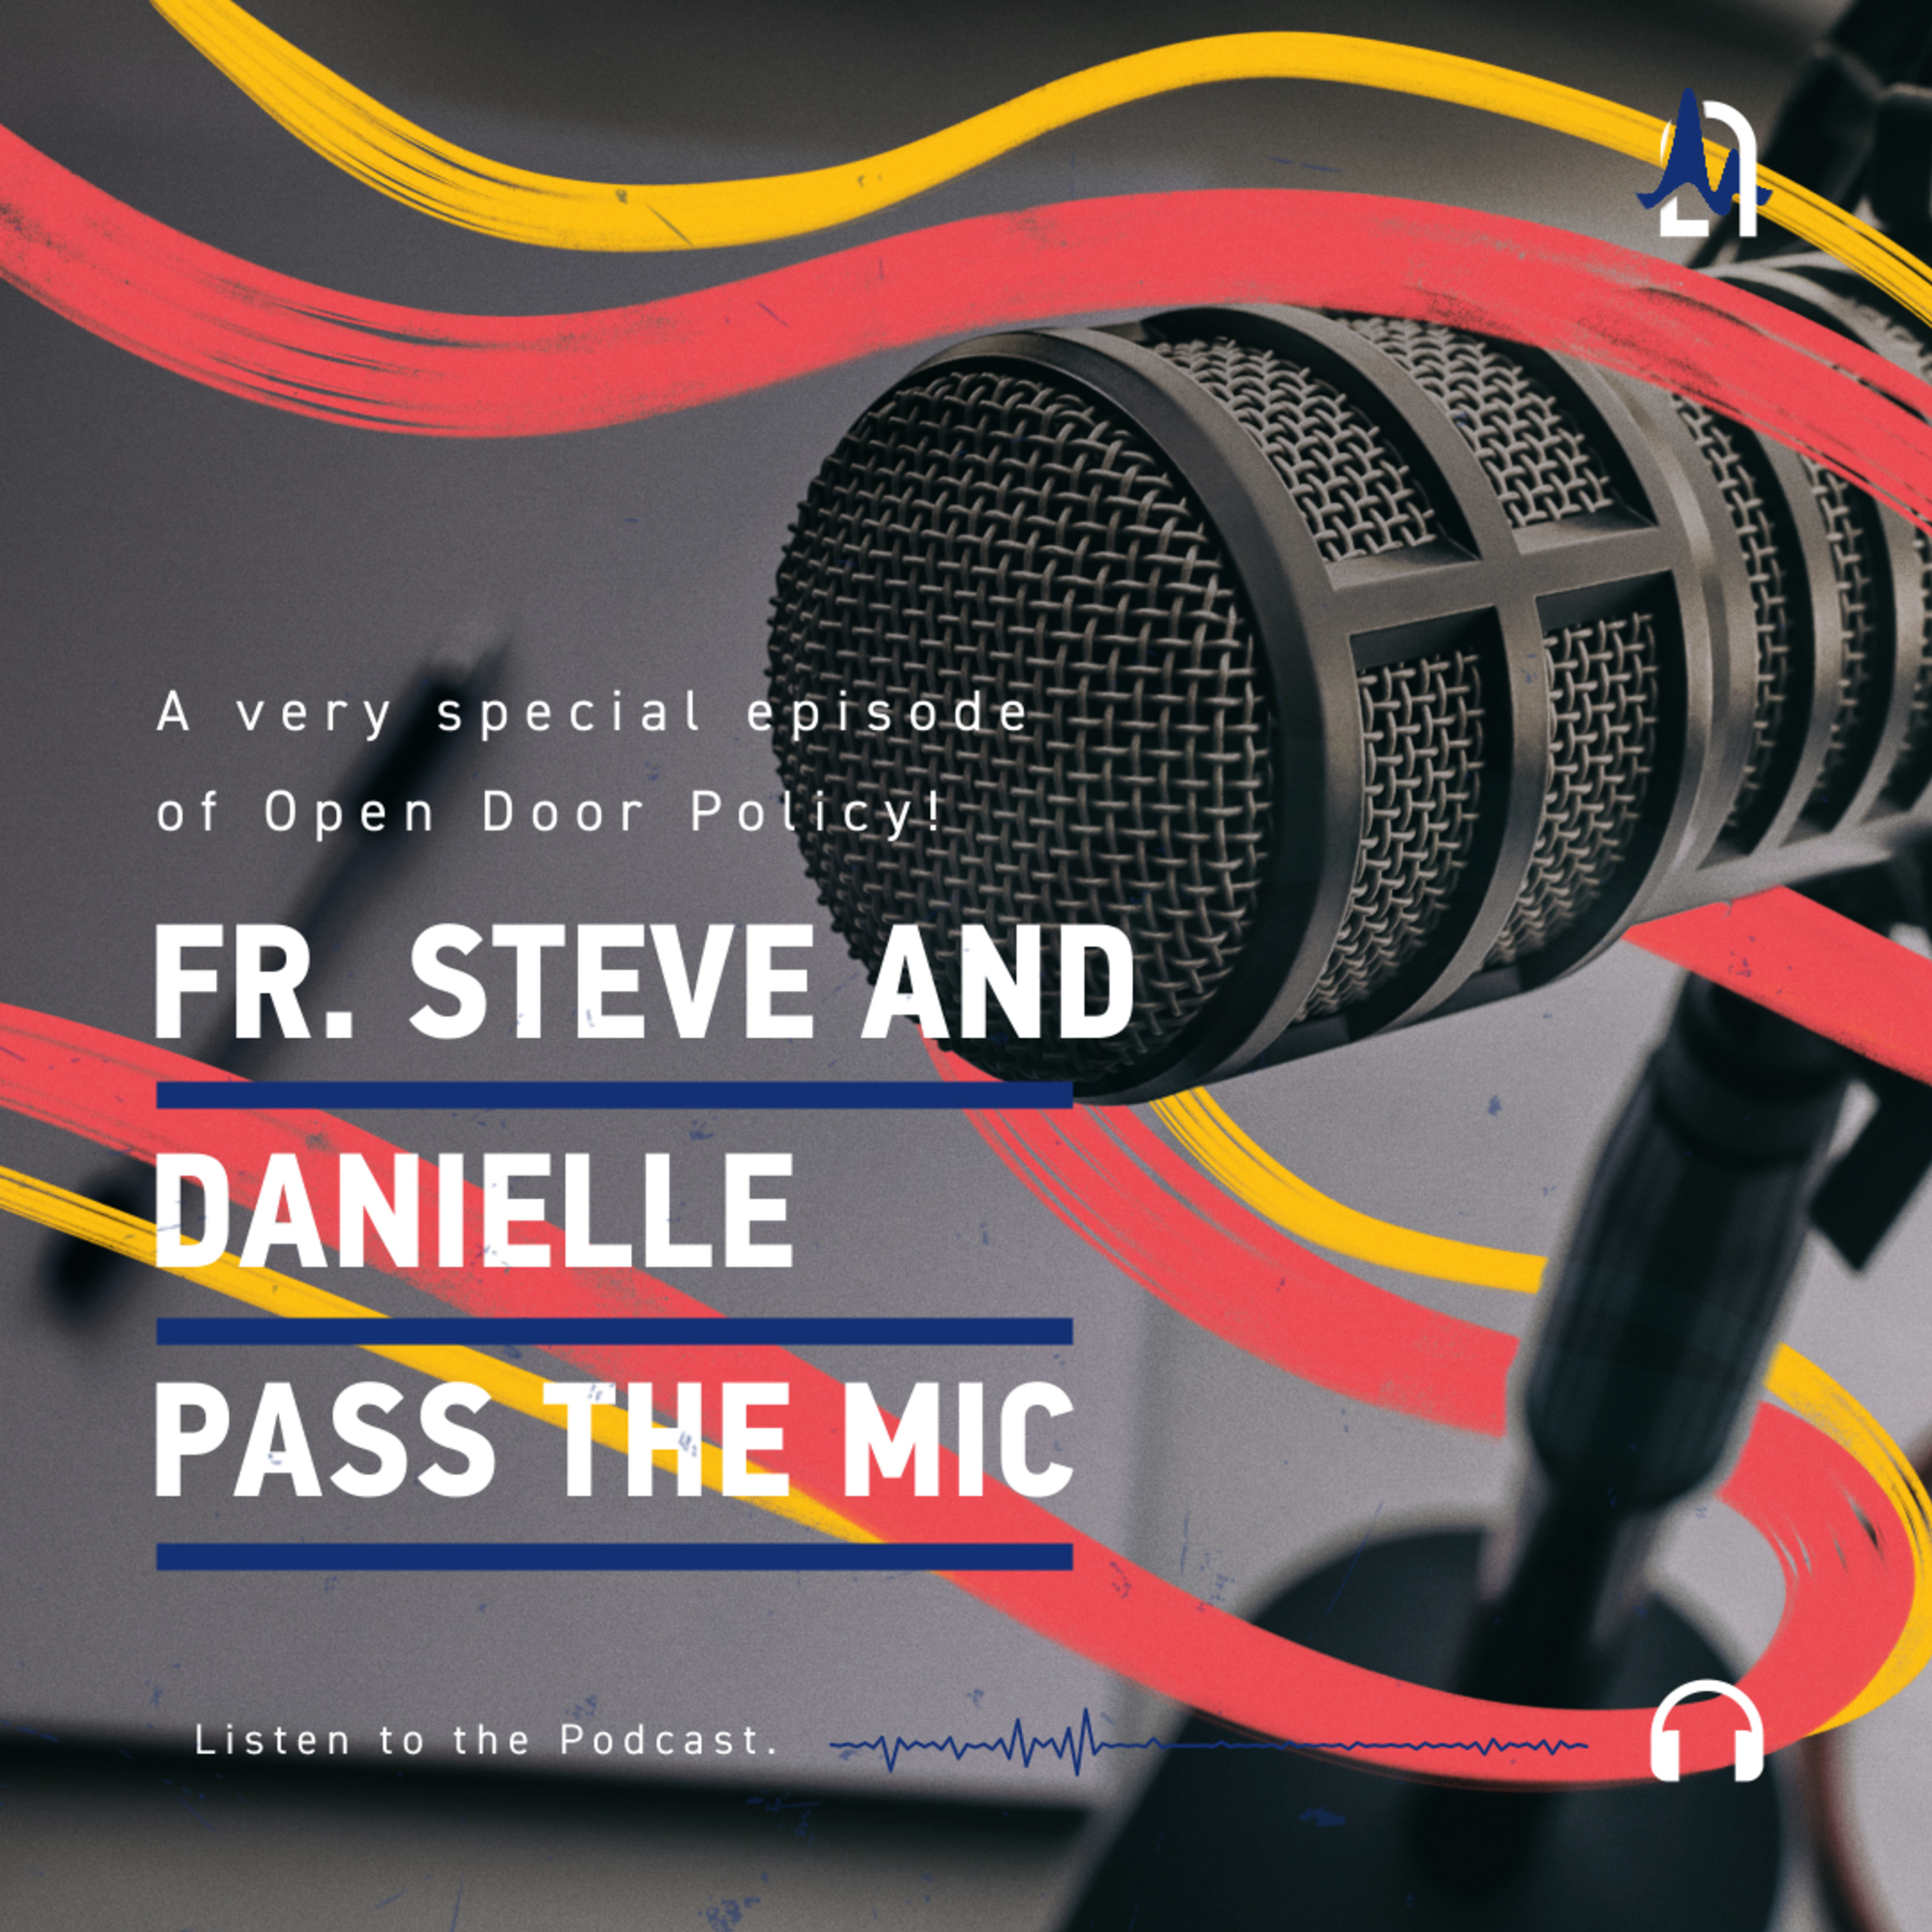 Episode 61: Fr. Steve and Danielle Pass the Mic